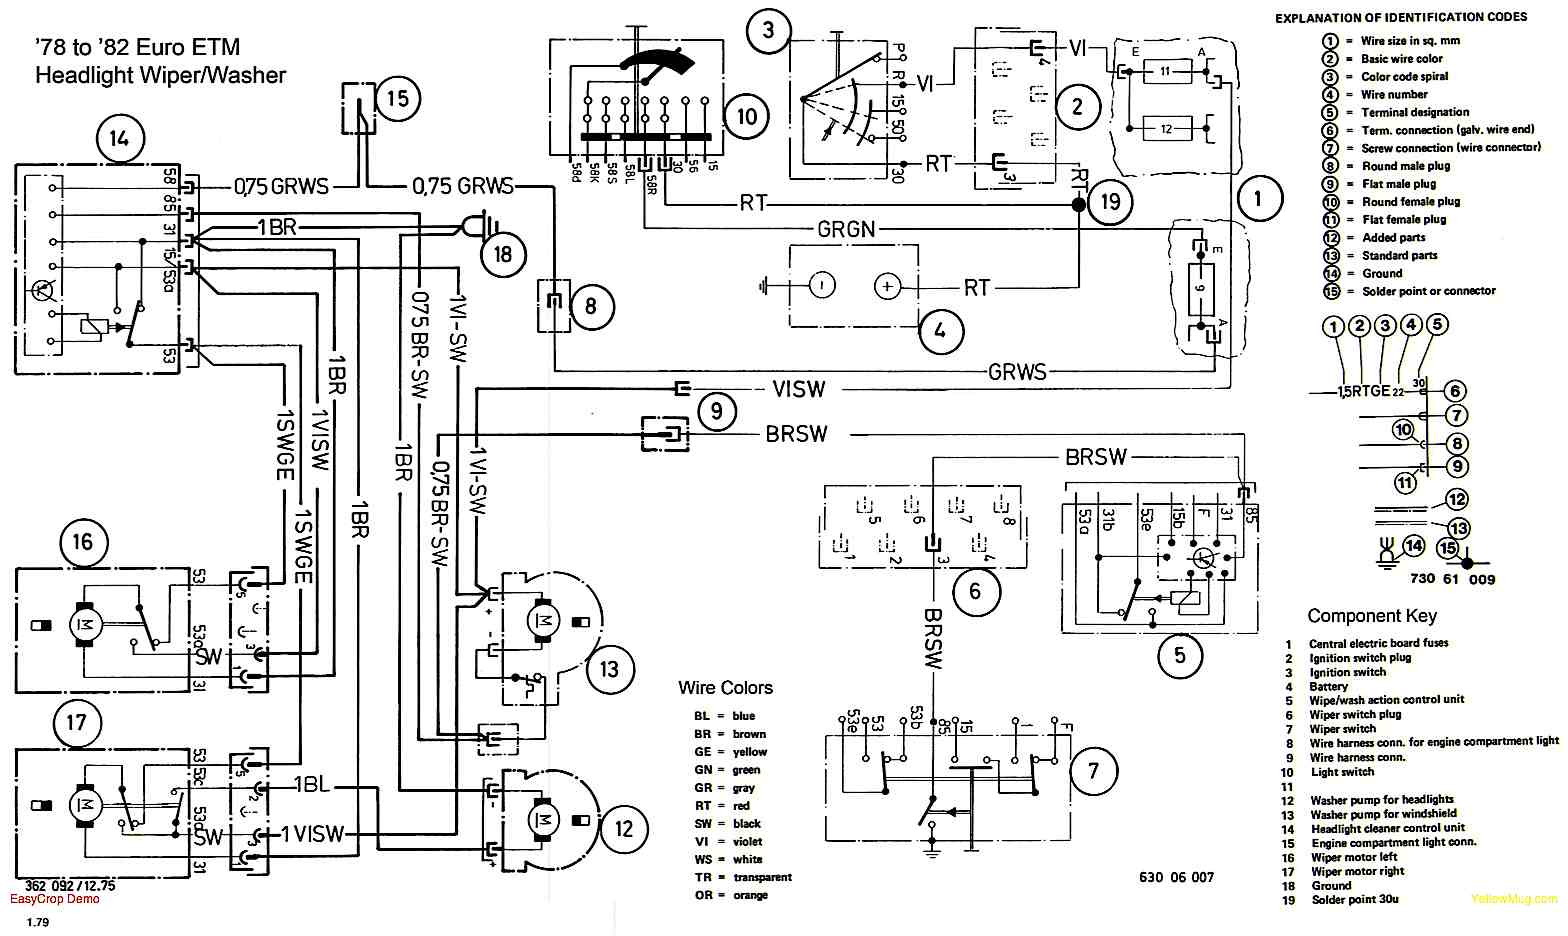 1992 Bmw 318i Wiring Diagram Auto Electrical Wiring Diagram 2003 Bmw X5 E53  Stereo Wiring Diagram Bmw X5 2003 Wiring Diagram